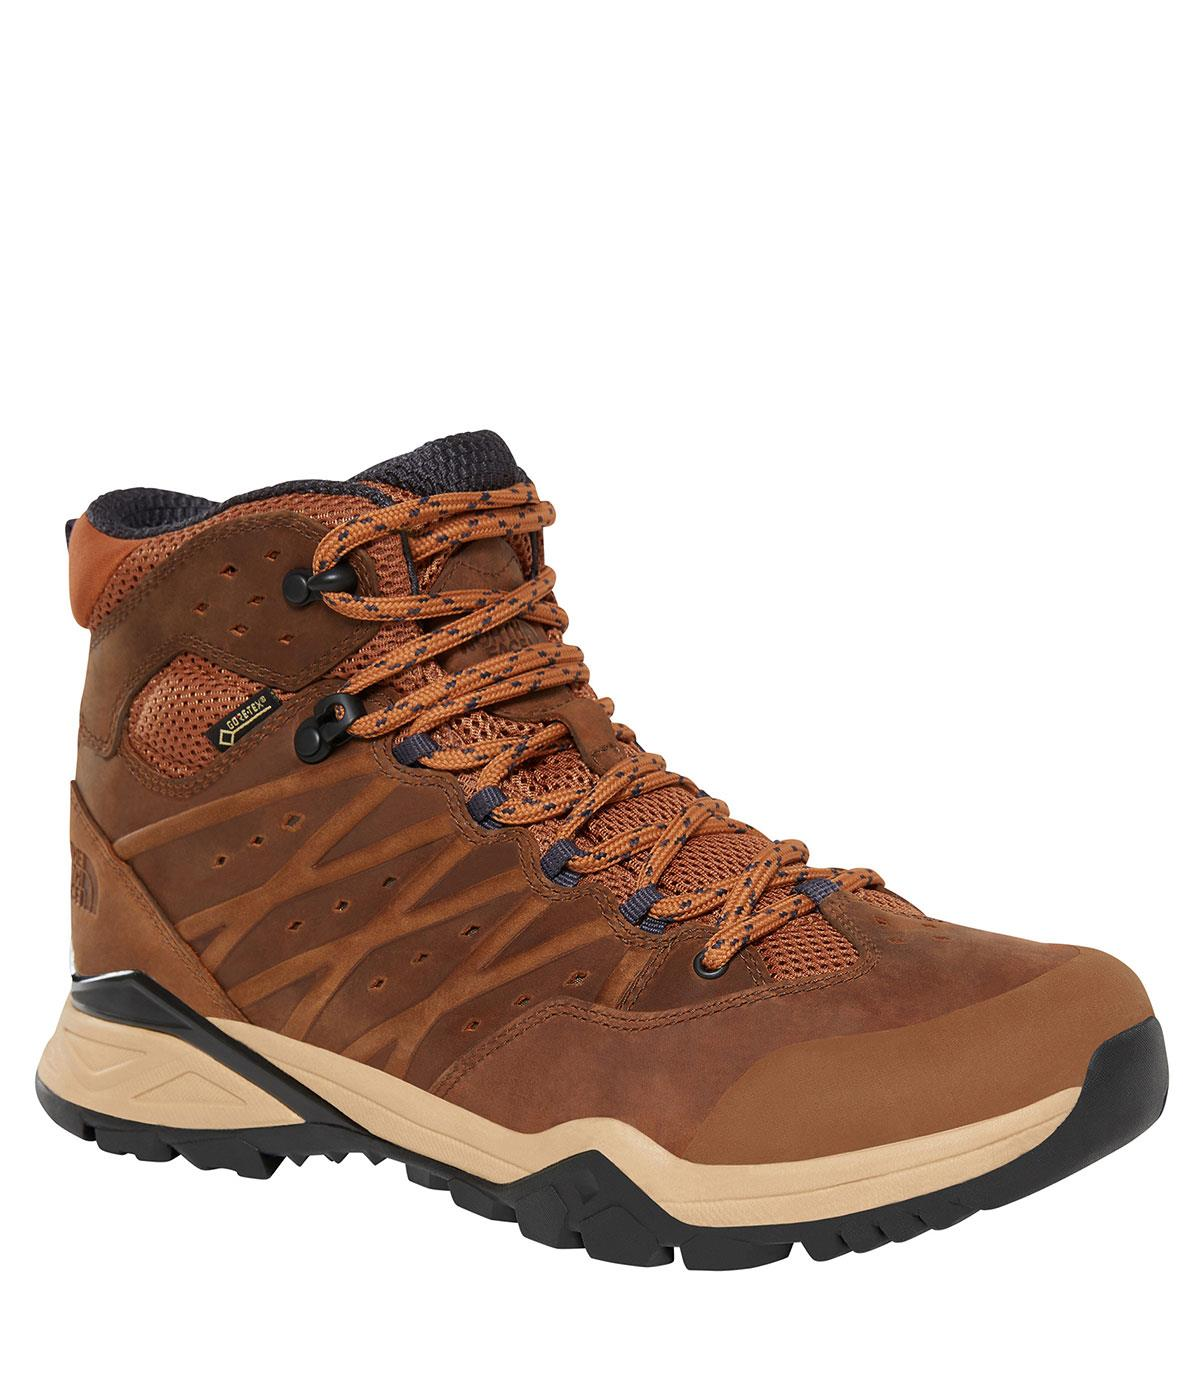 The North Face  Hh Hike II Md Goretex  Nf0A2Yb4H071 Bot